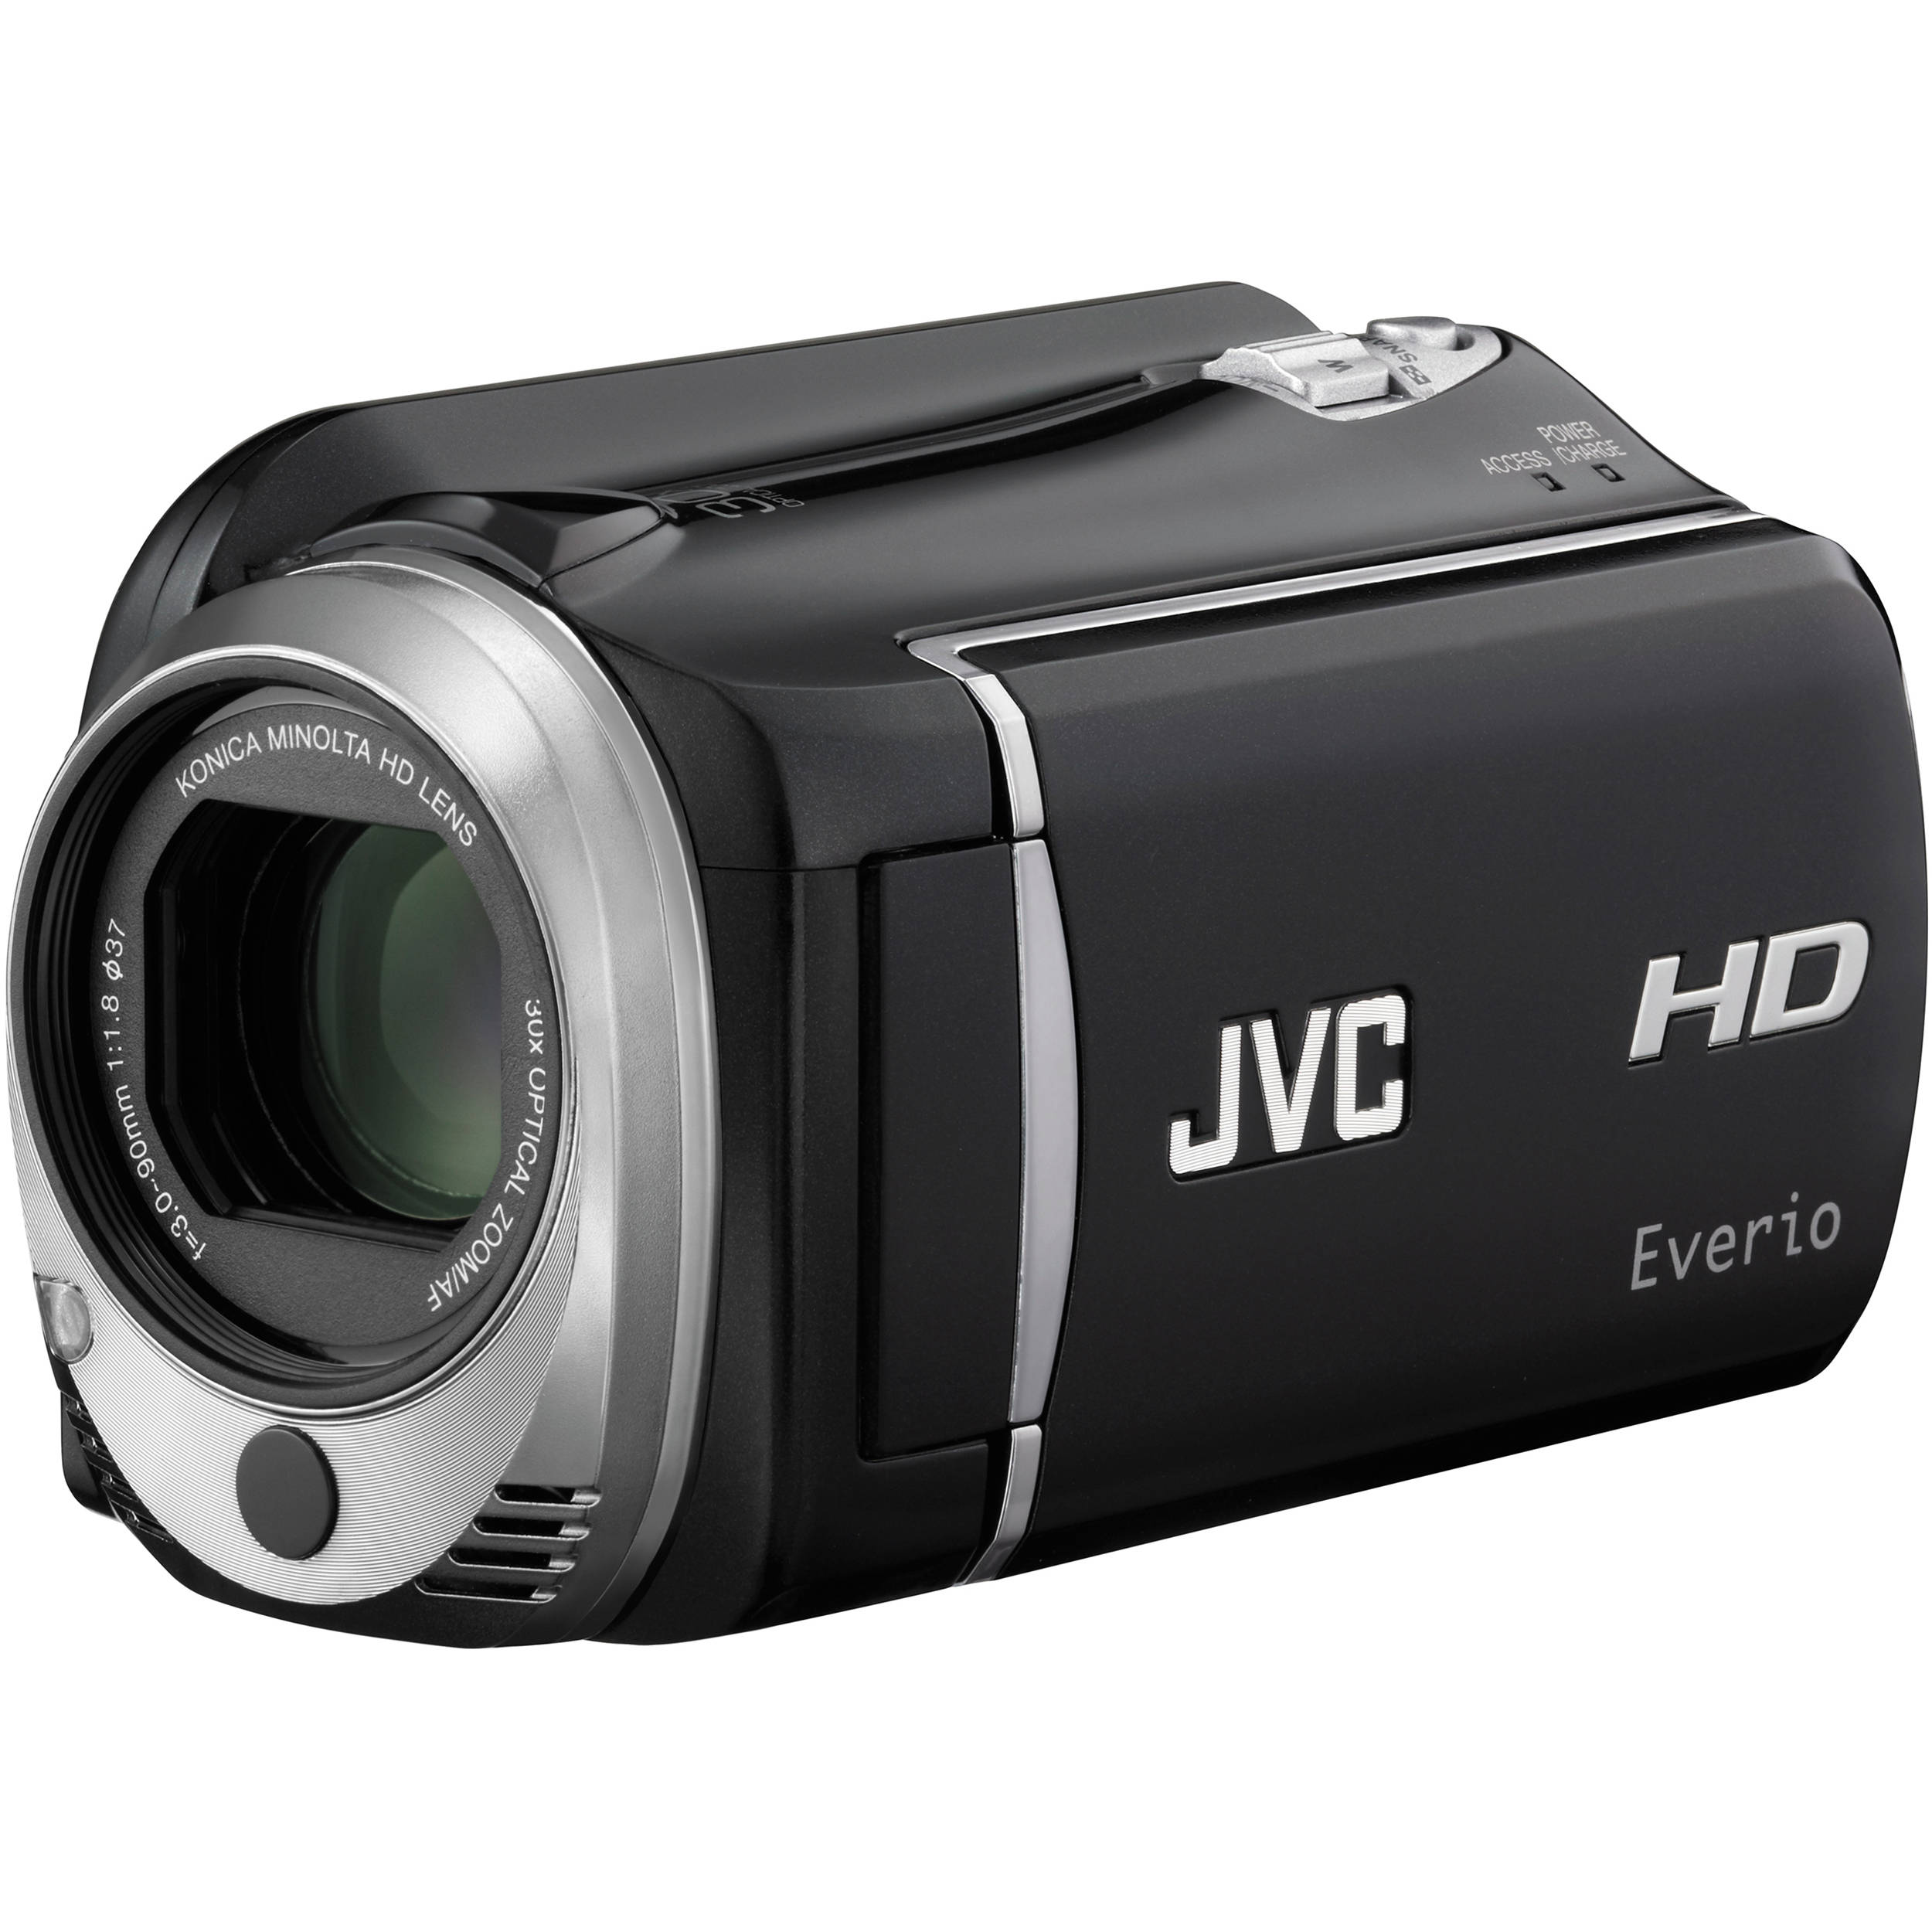 JVC GZ-HD620 HD Everio Hard Drive Camera GZHD620BUS B\u0026H Photo